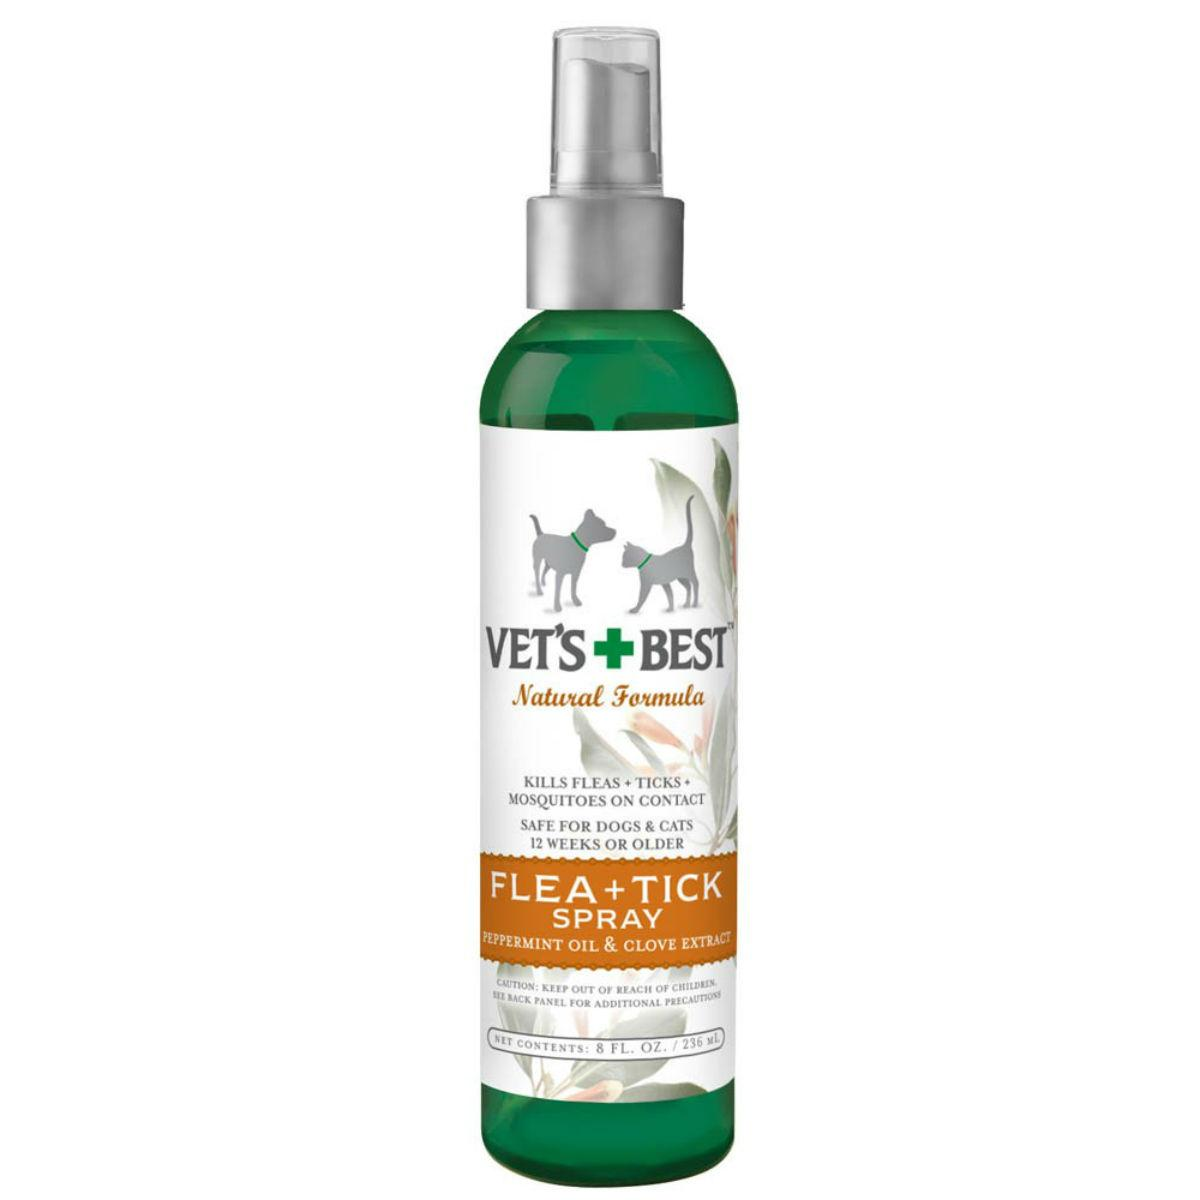 Vet's Best Flea + Tick Spray